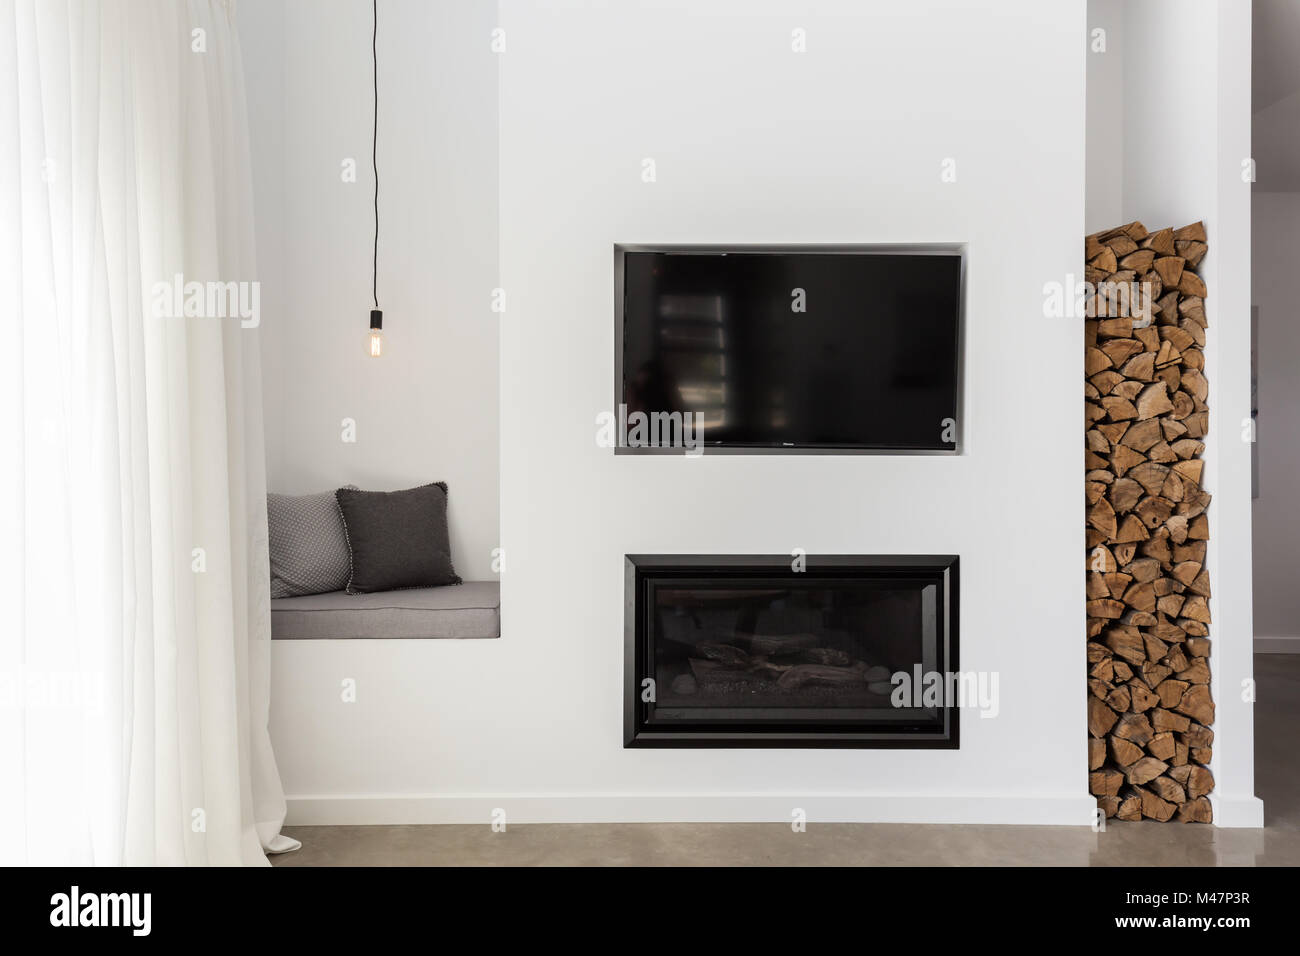 Built In Tv And Gas Fire In A Contemporary Living Room Stock Photo